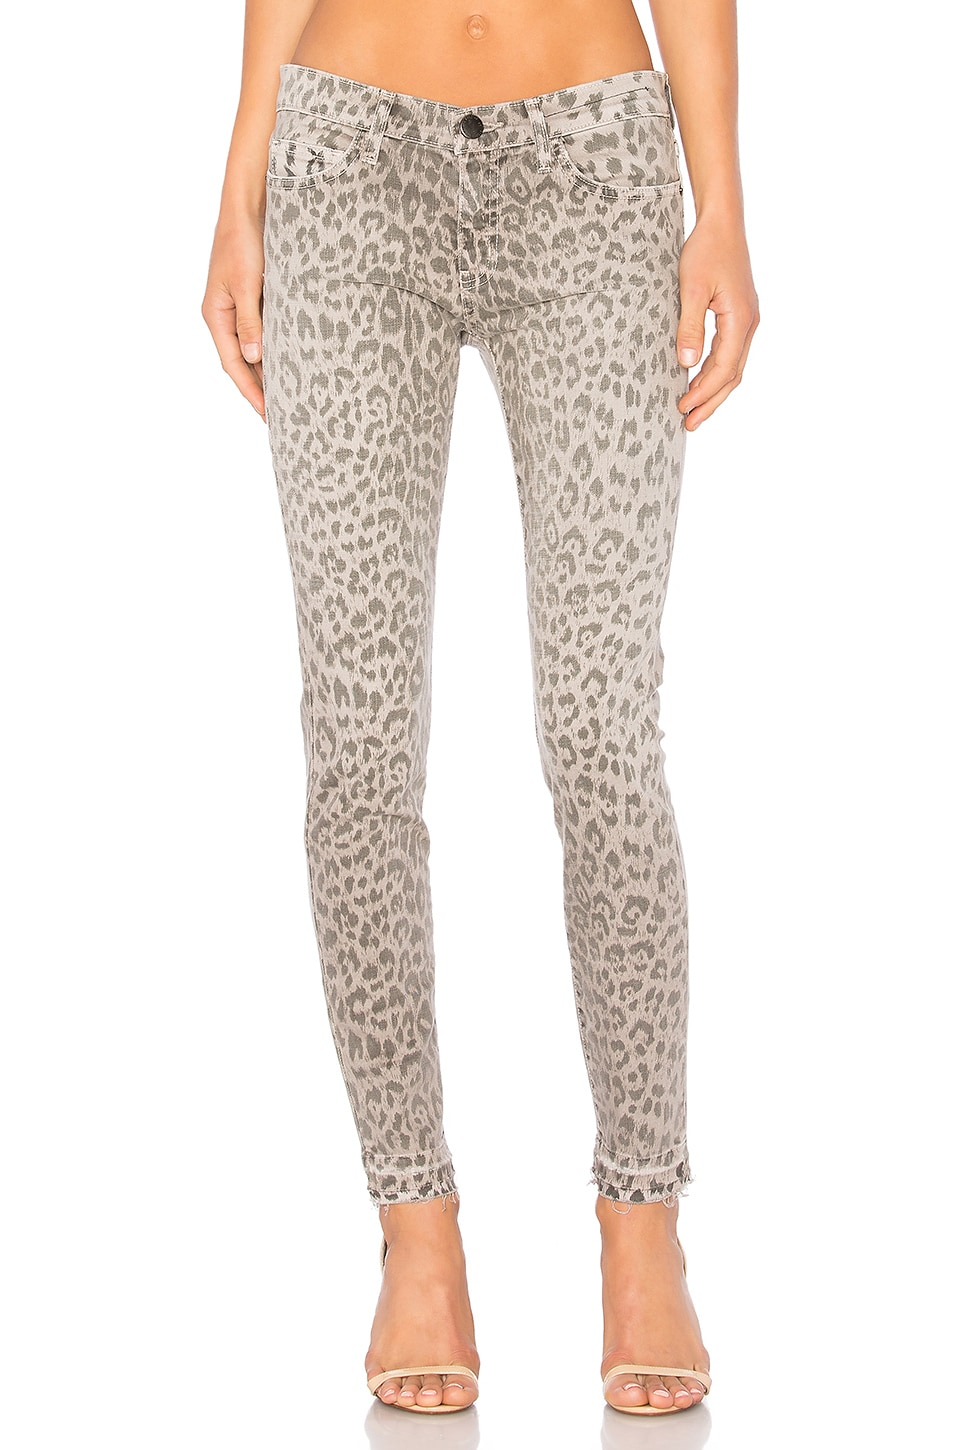 Current/Elliott The Stiletto Skinny in Grey Leopard with Released Hem